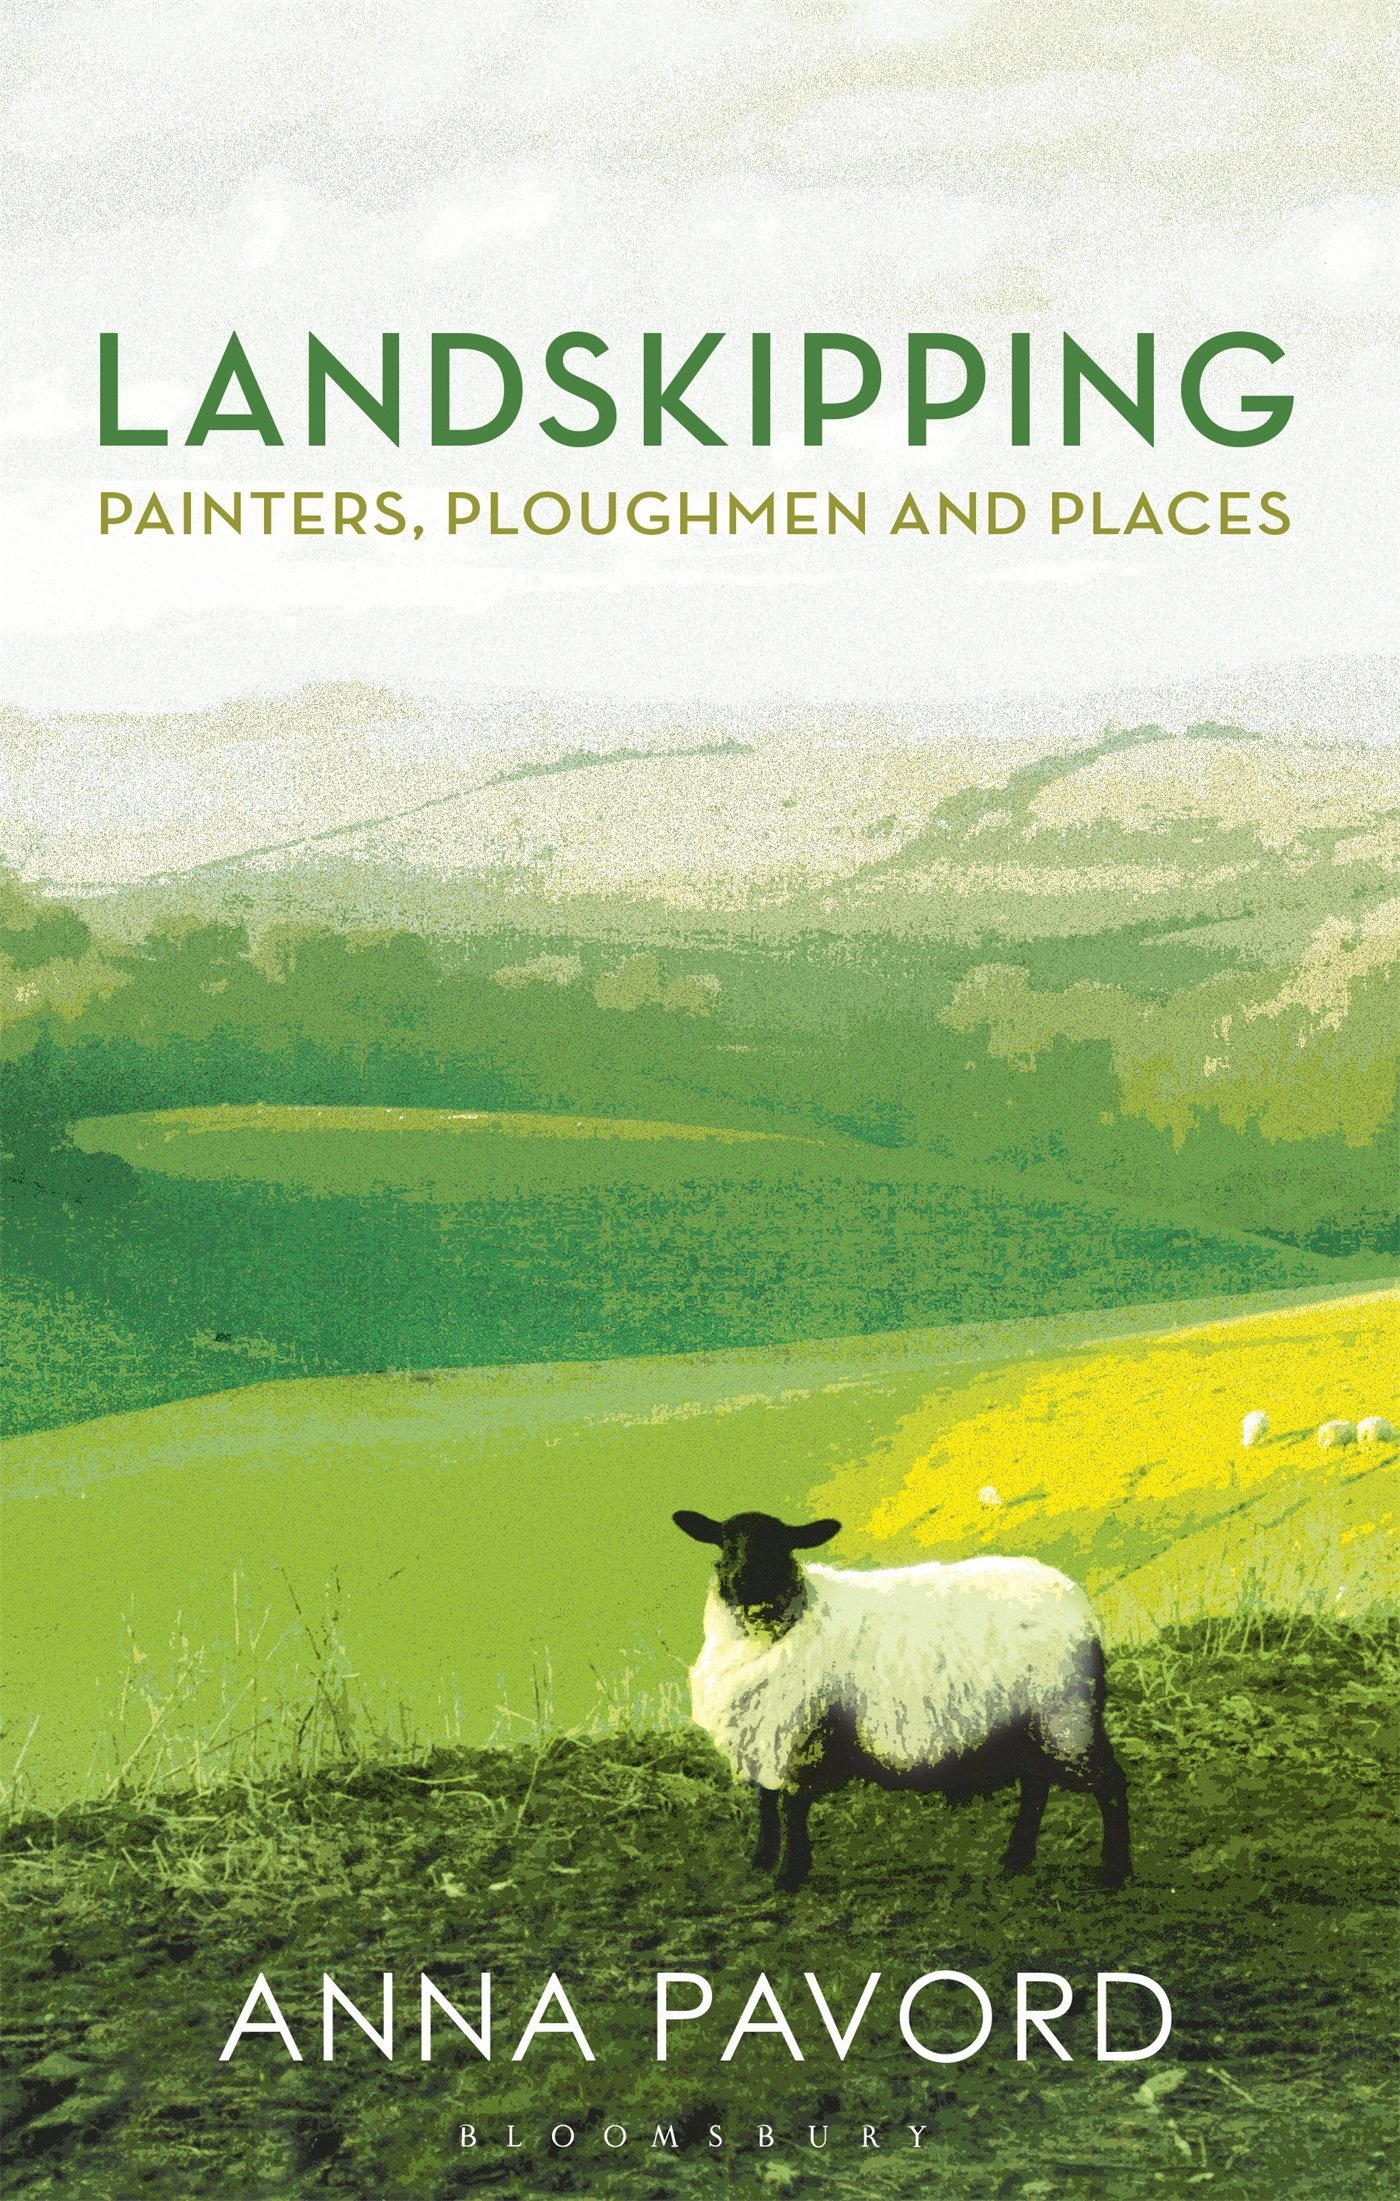 Landskipping: Painters, Ploughmen And Places: Amazon: Anna Pavord:  9781408868911: Books